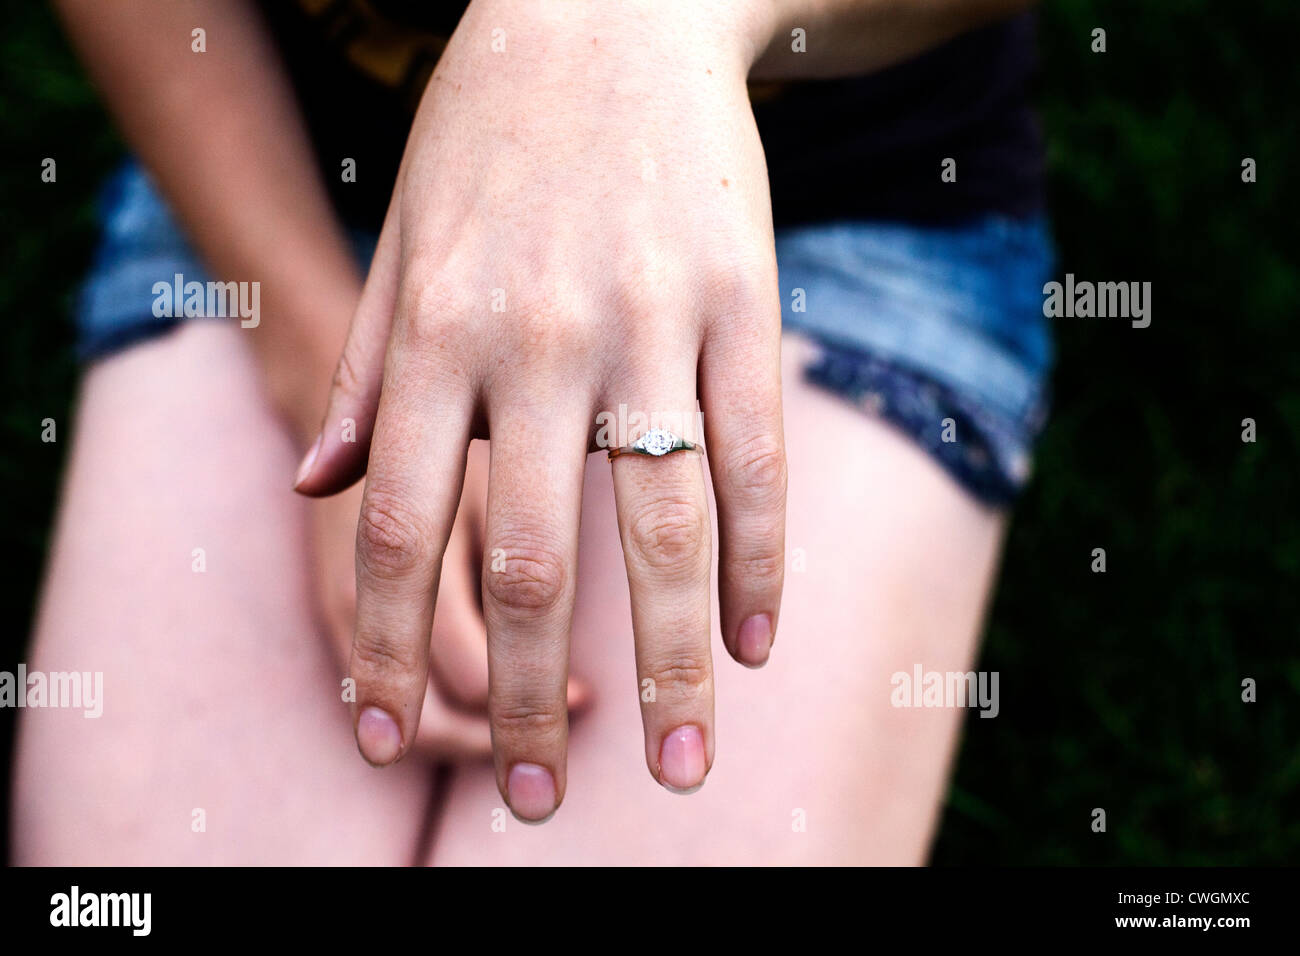 Ring Fingers Stock Photos & Ring Fingers Stock Images - Alamy